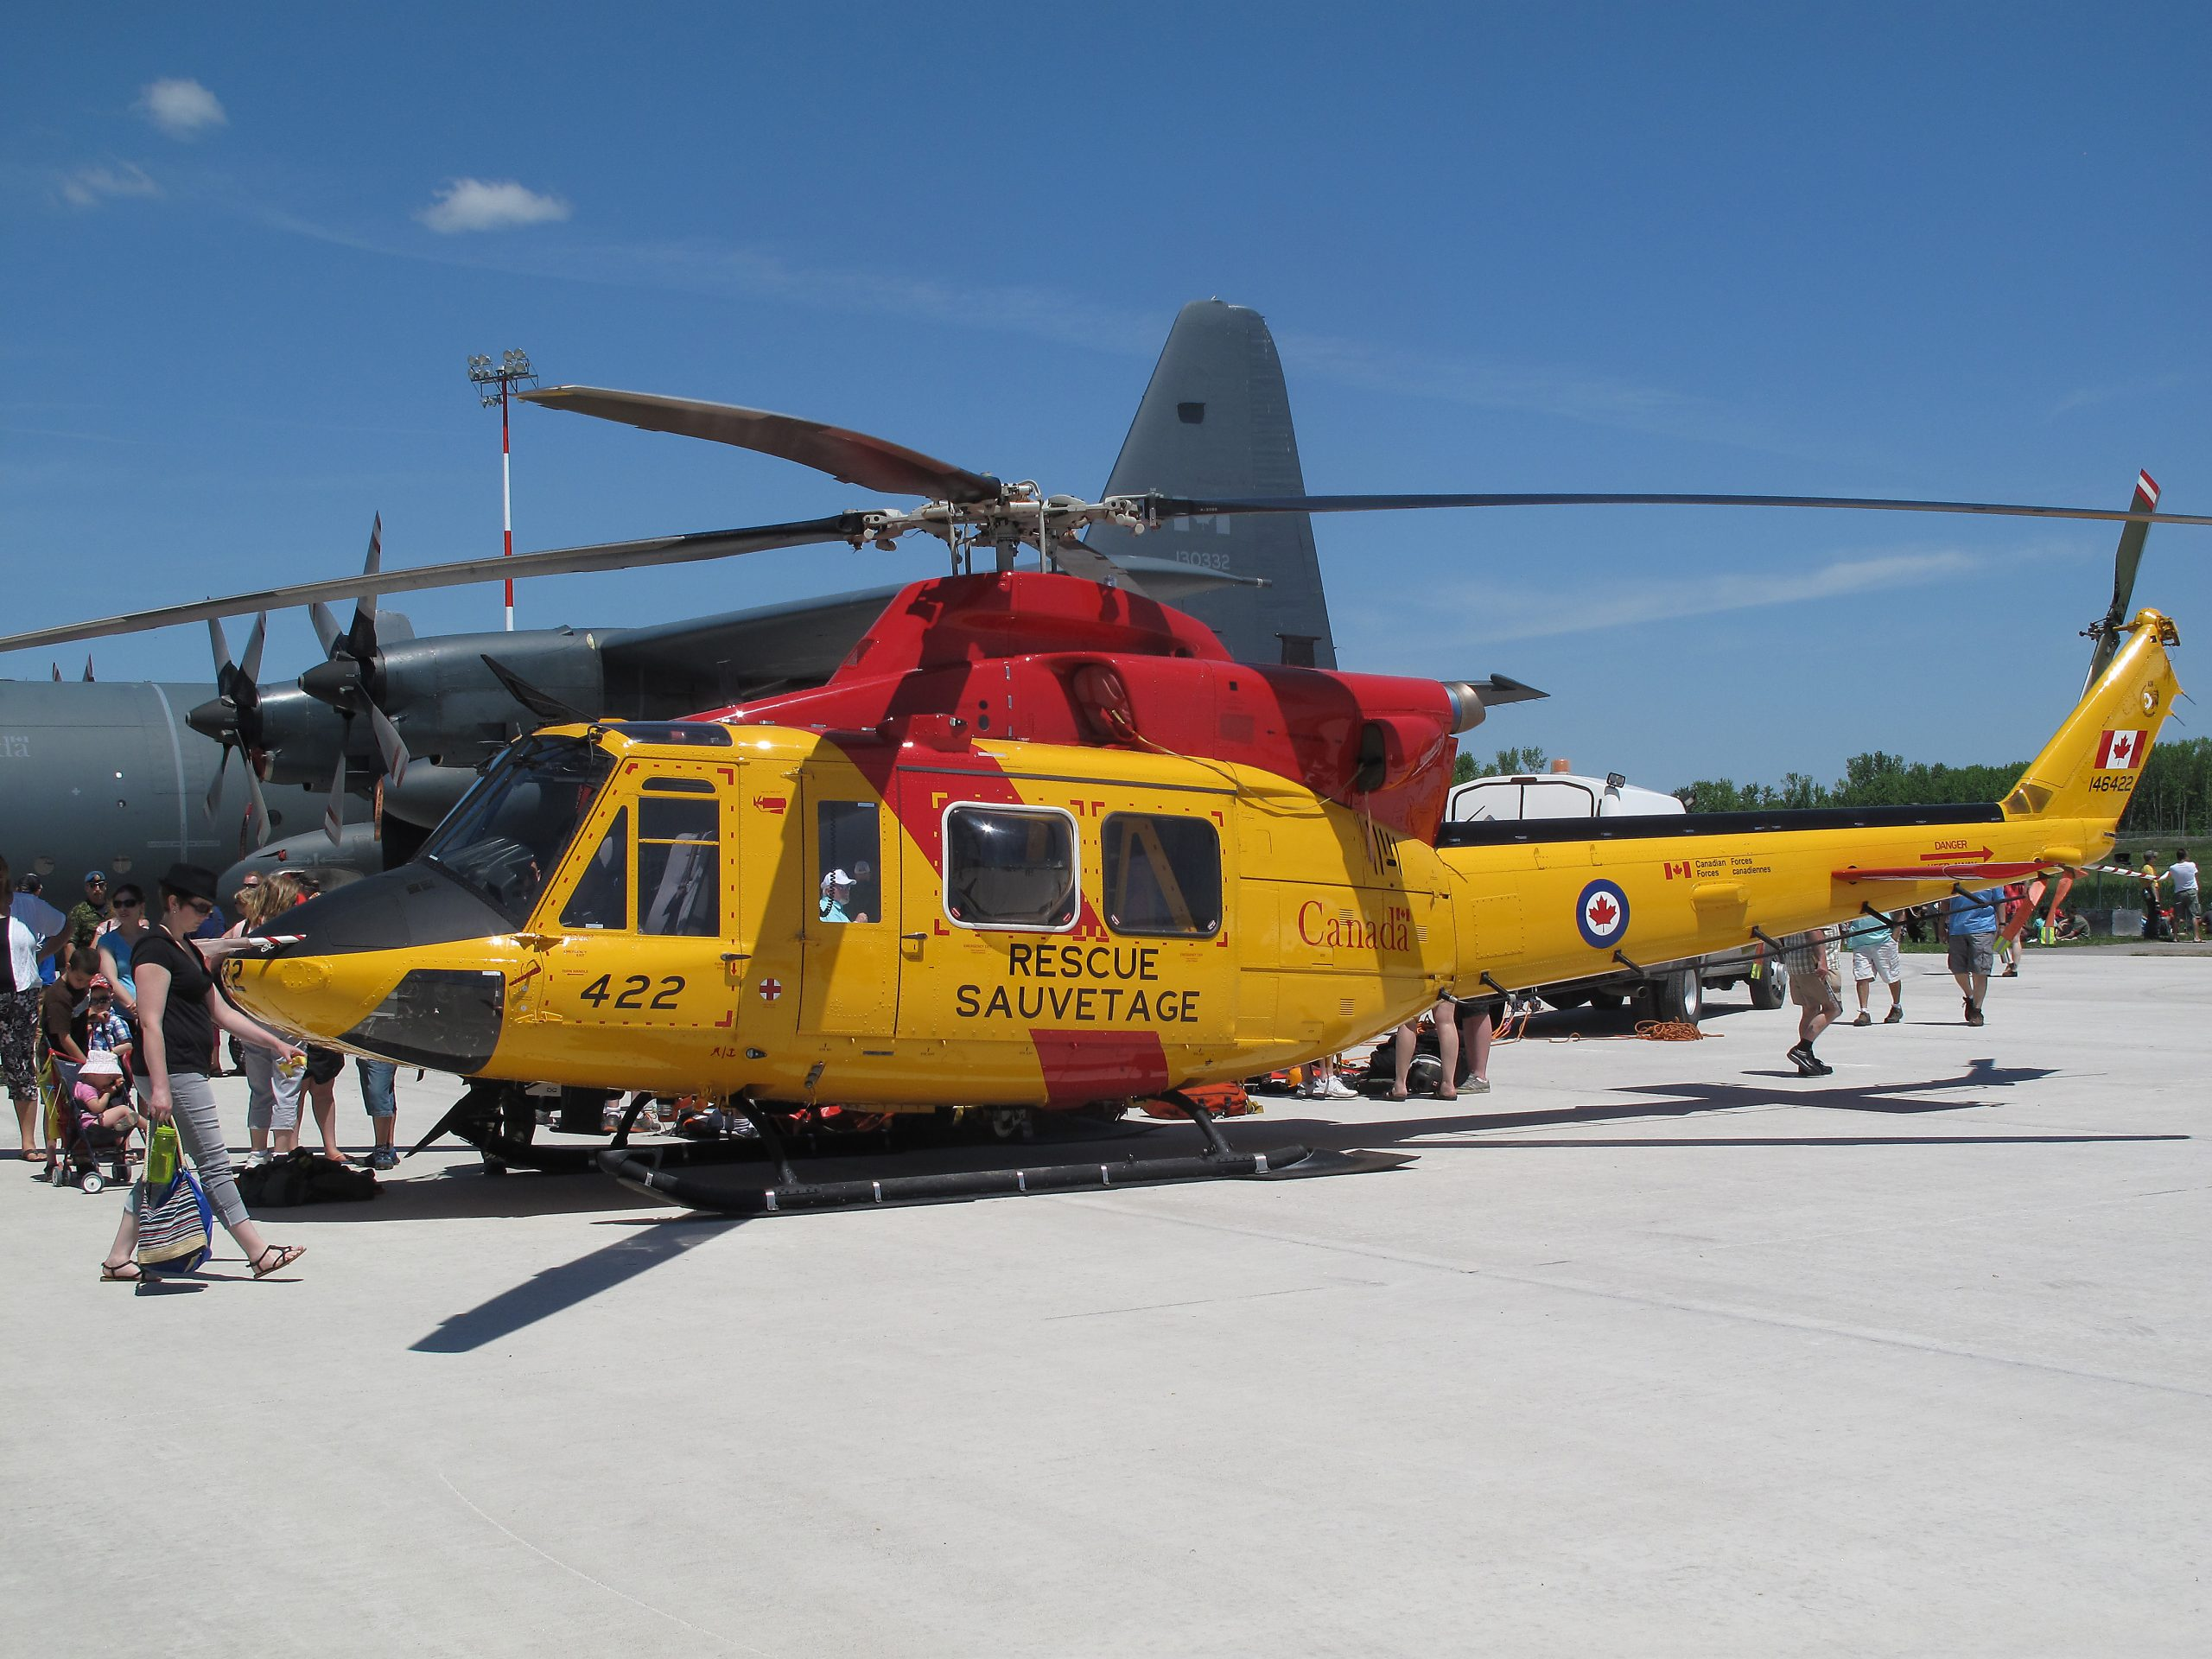 424 Squadron assists in medical evacuation